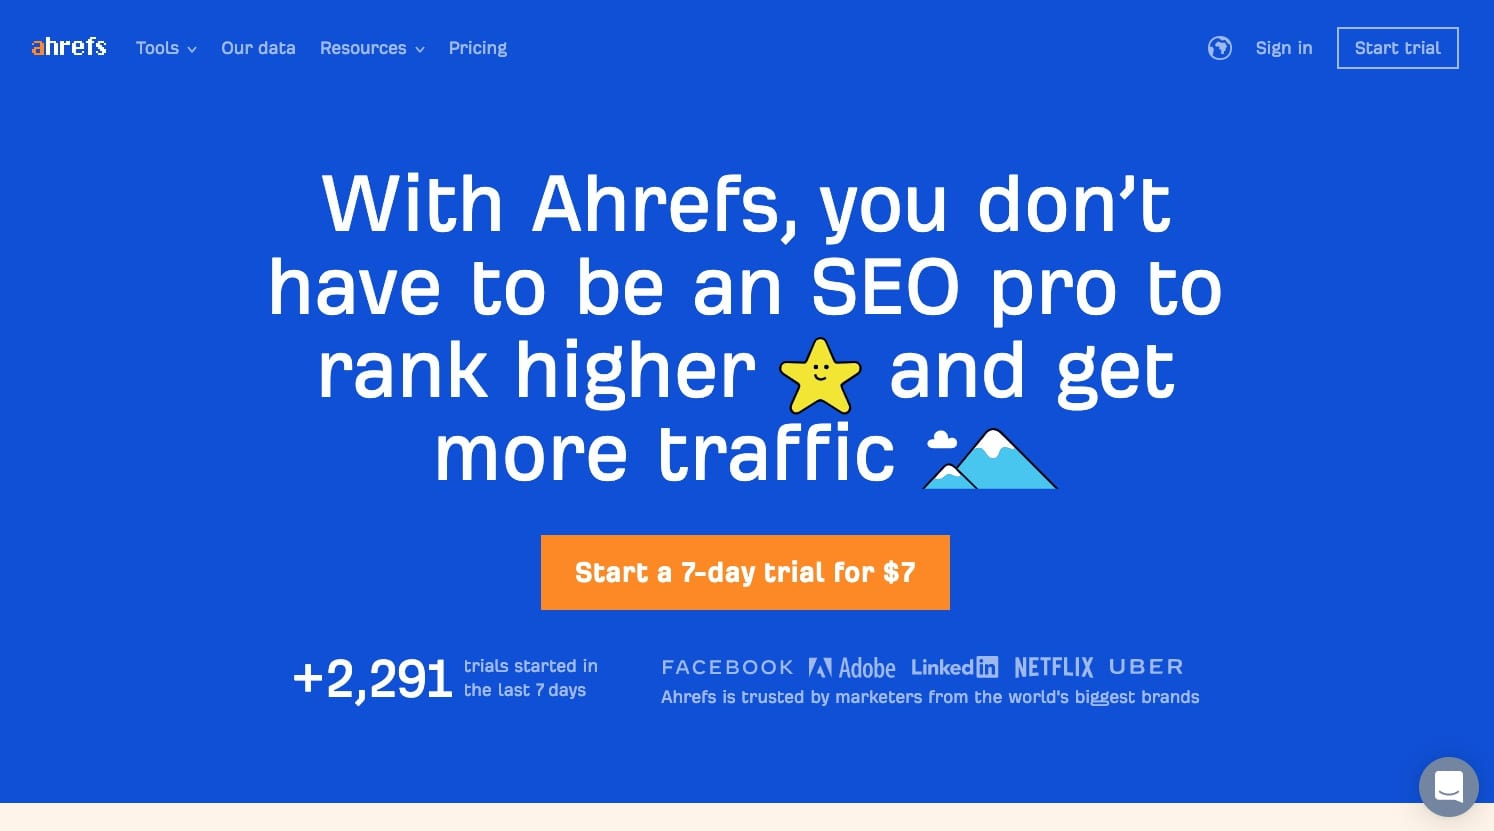 An image of the Ahrefs' website.